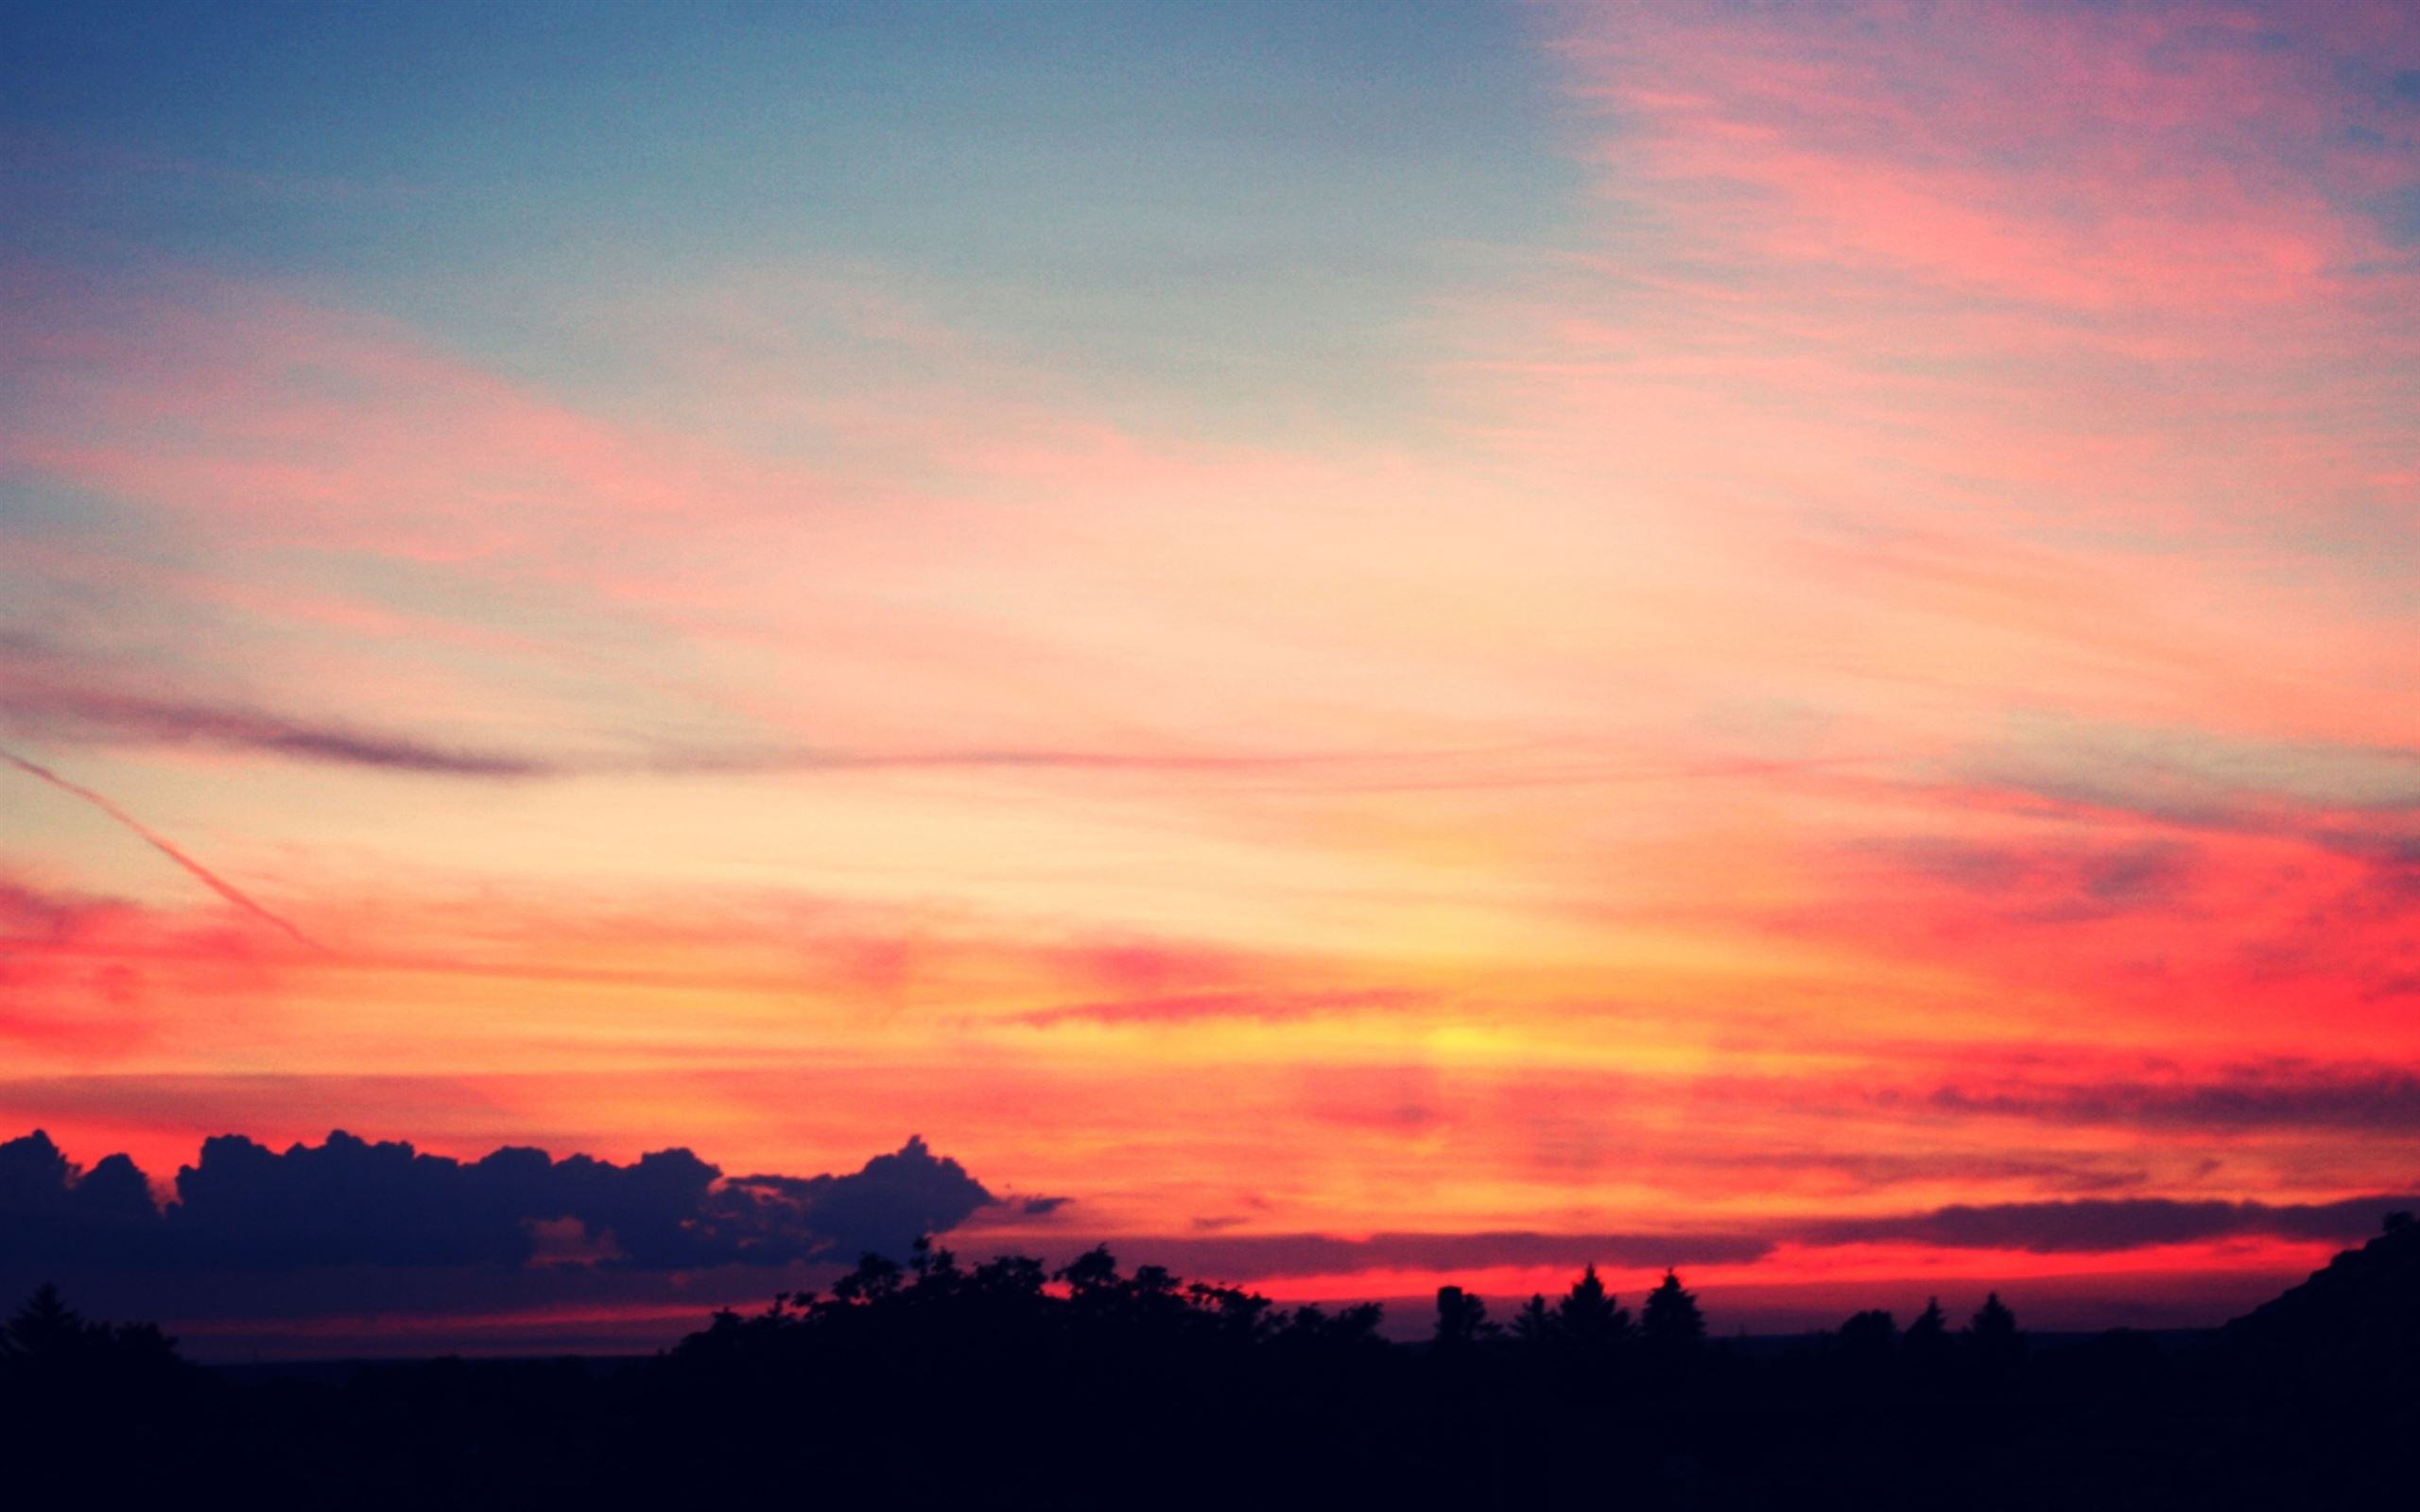 Sunset Wallpaper For Macbook Air